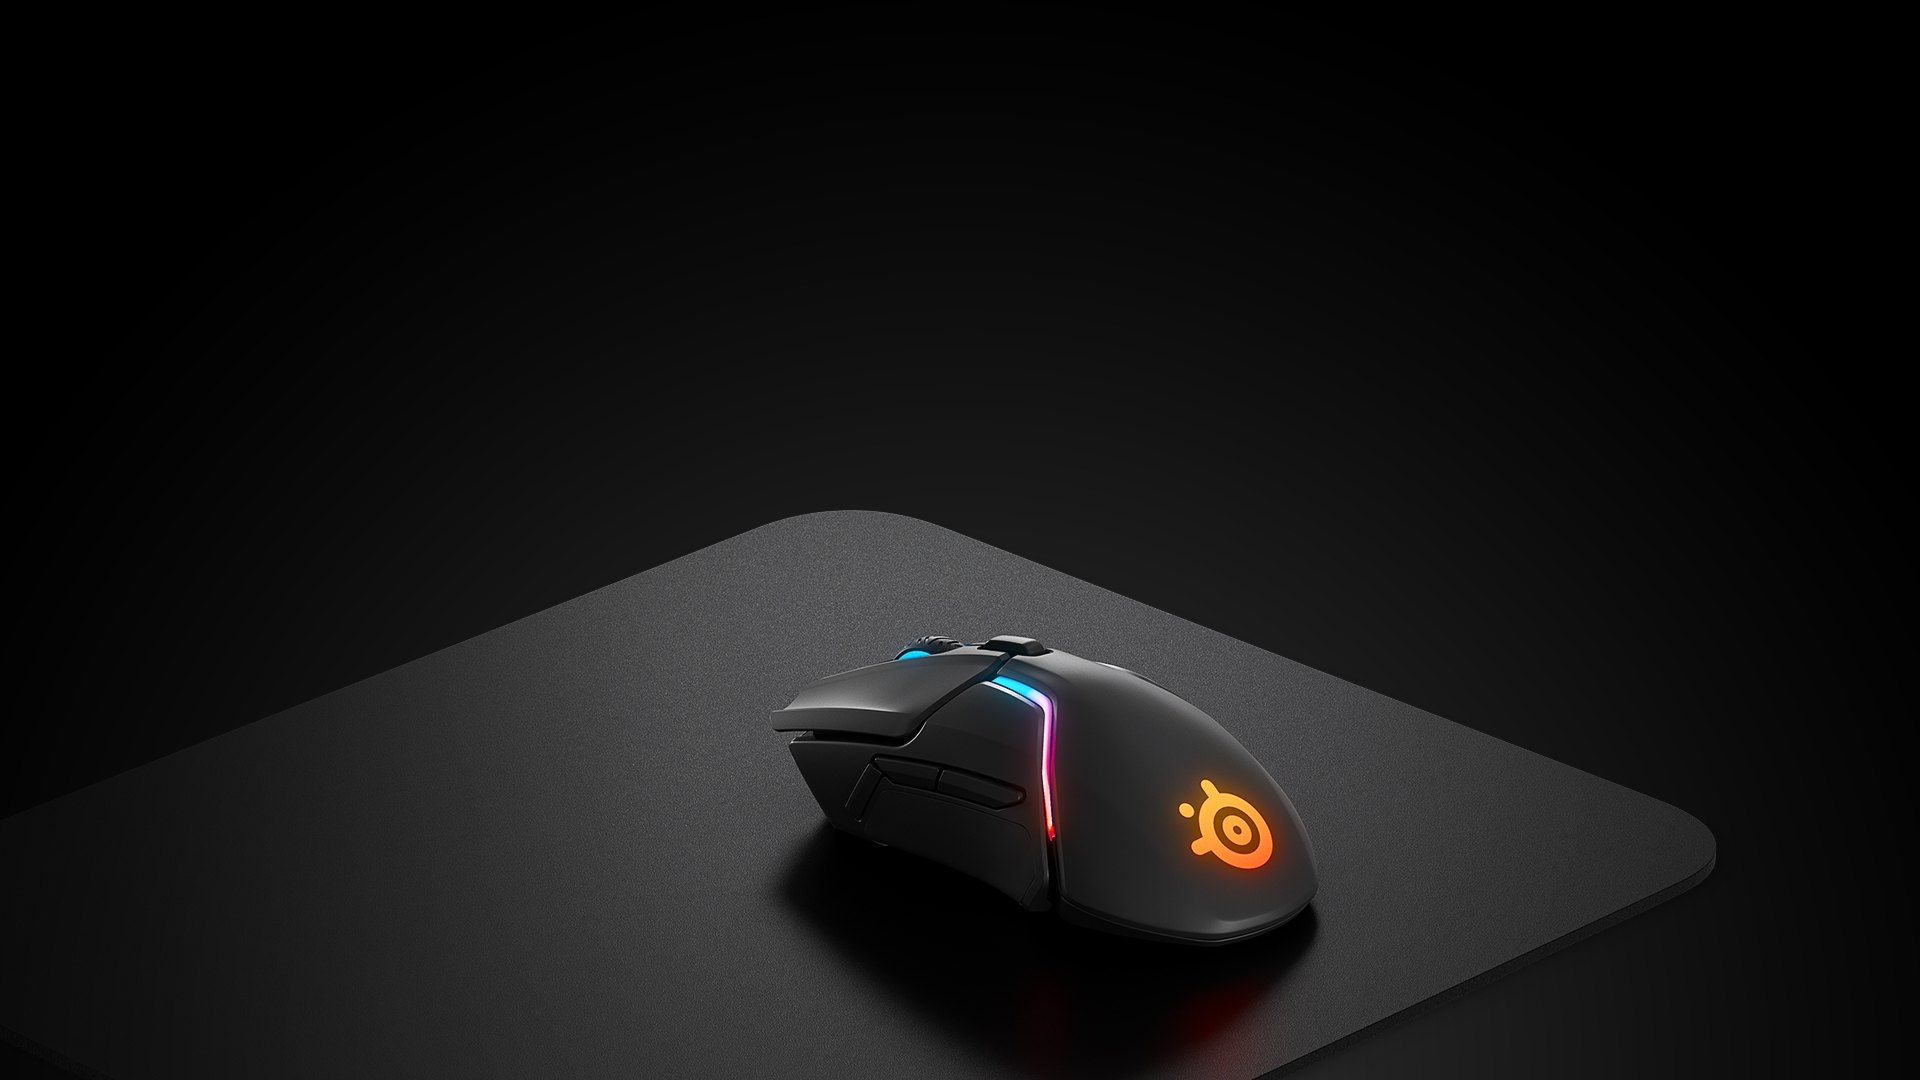 Lót chuột Steelseries